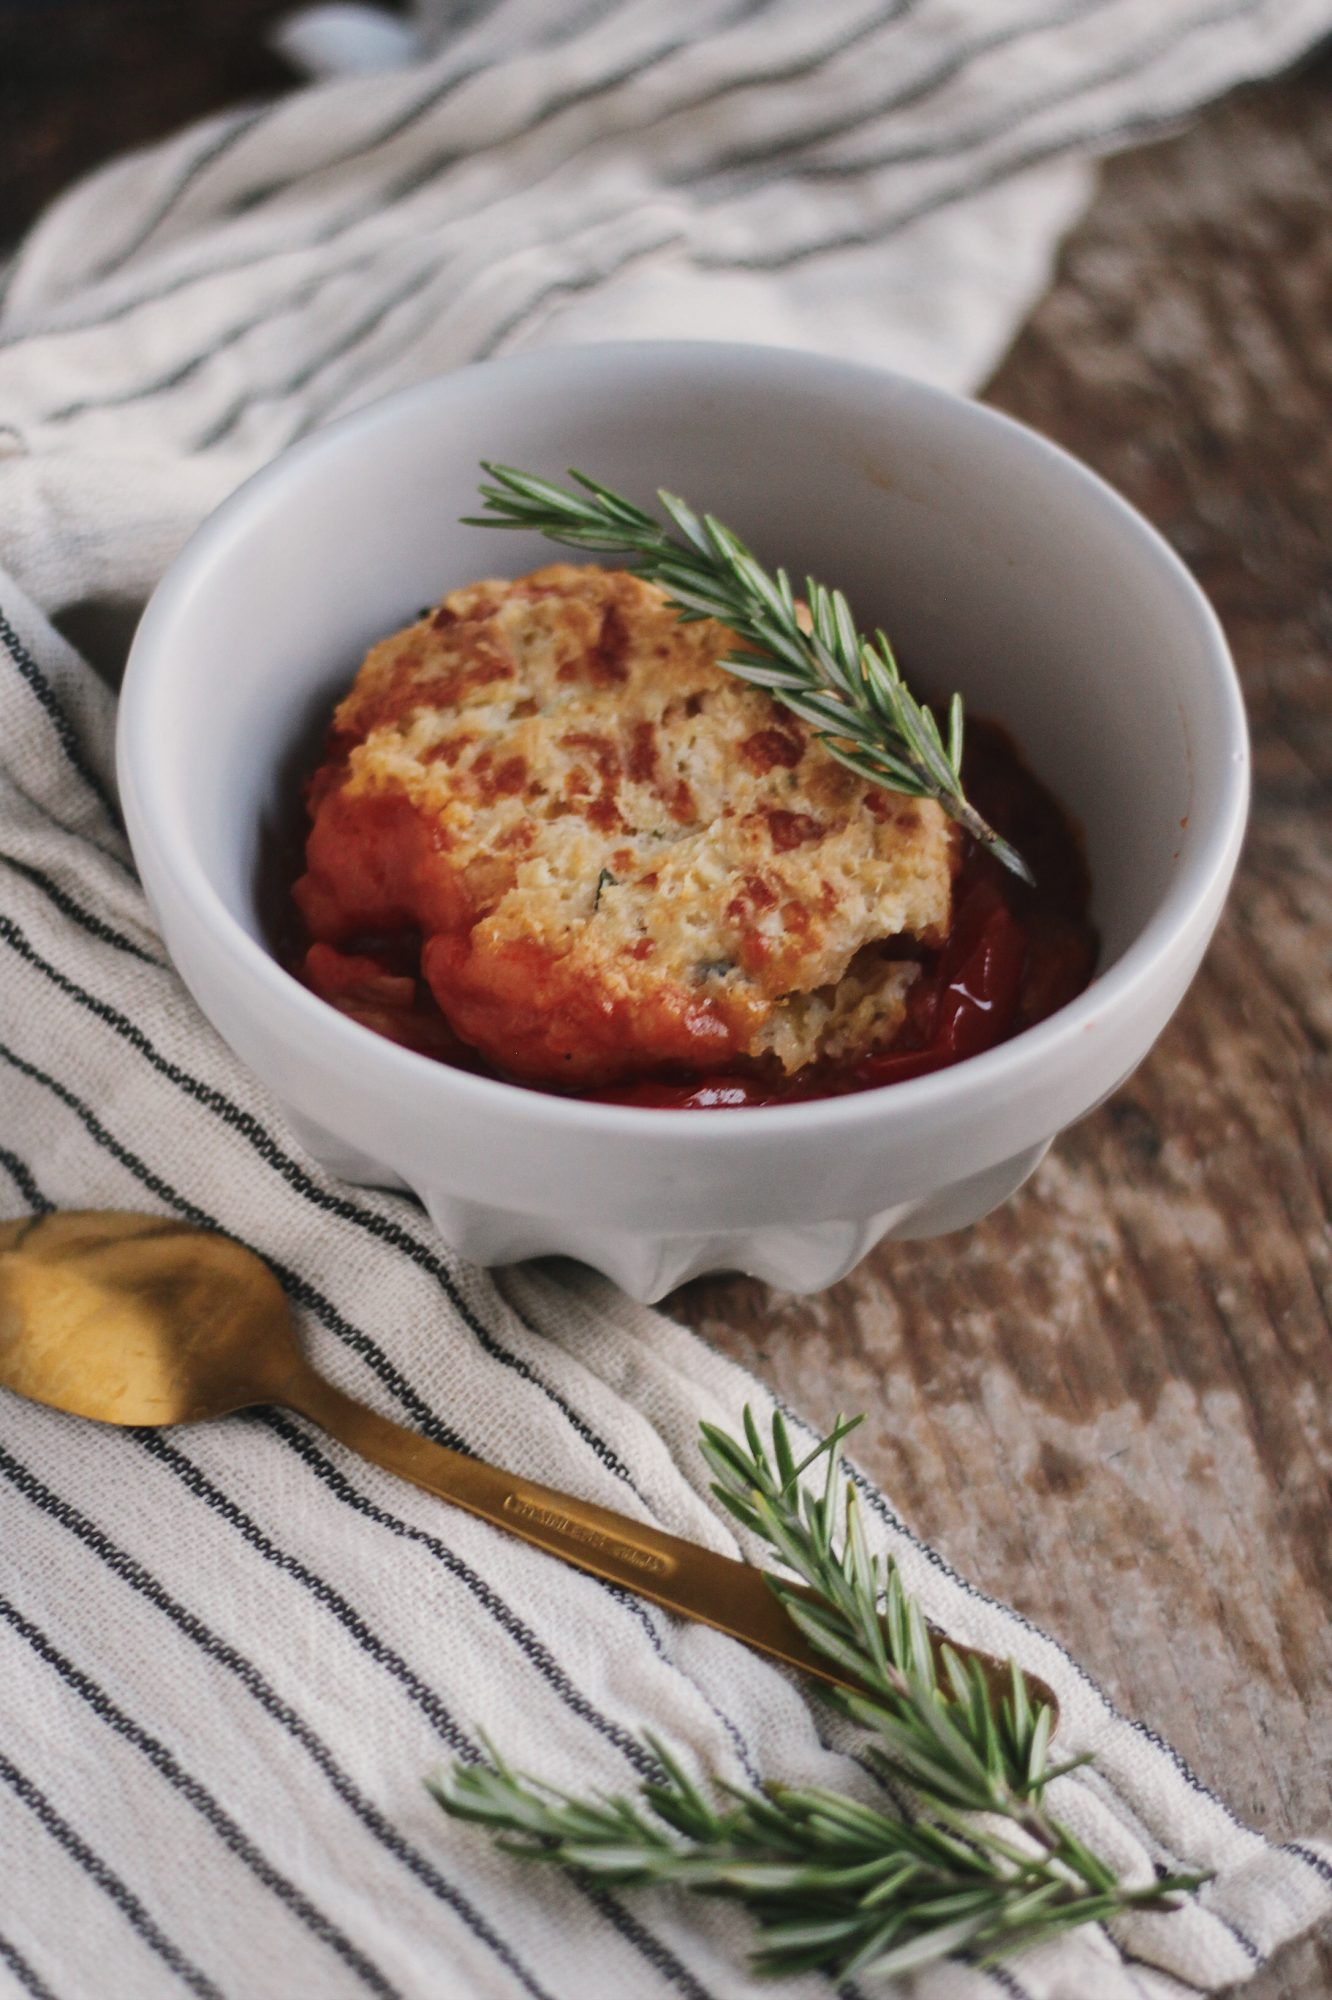 Tomato Cobbler with Cheddar Herb Biscuits